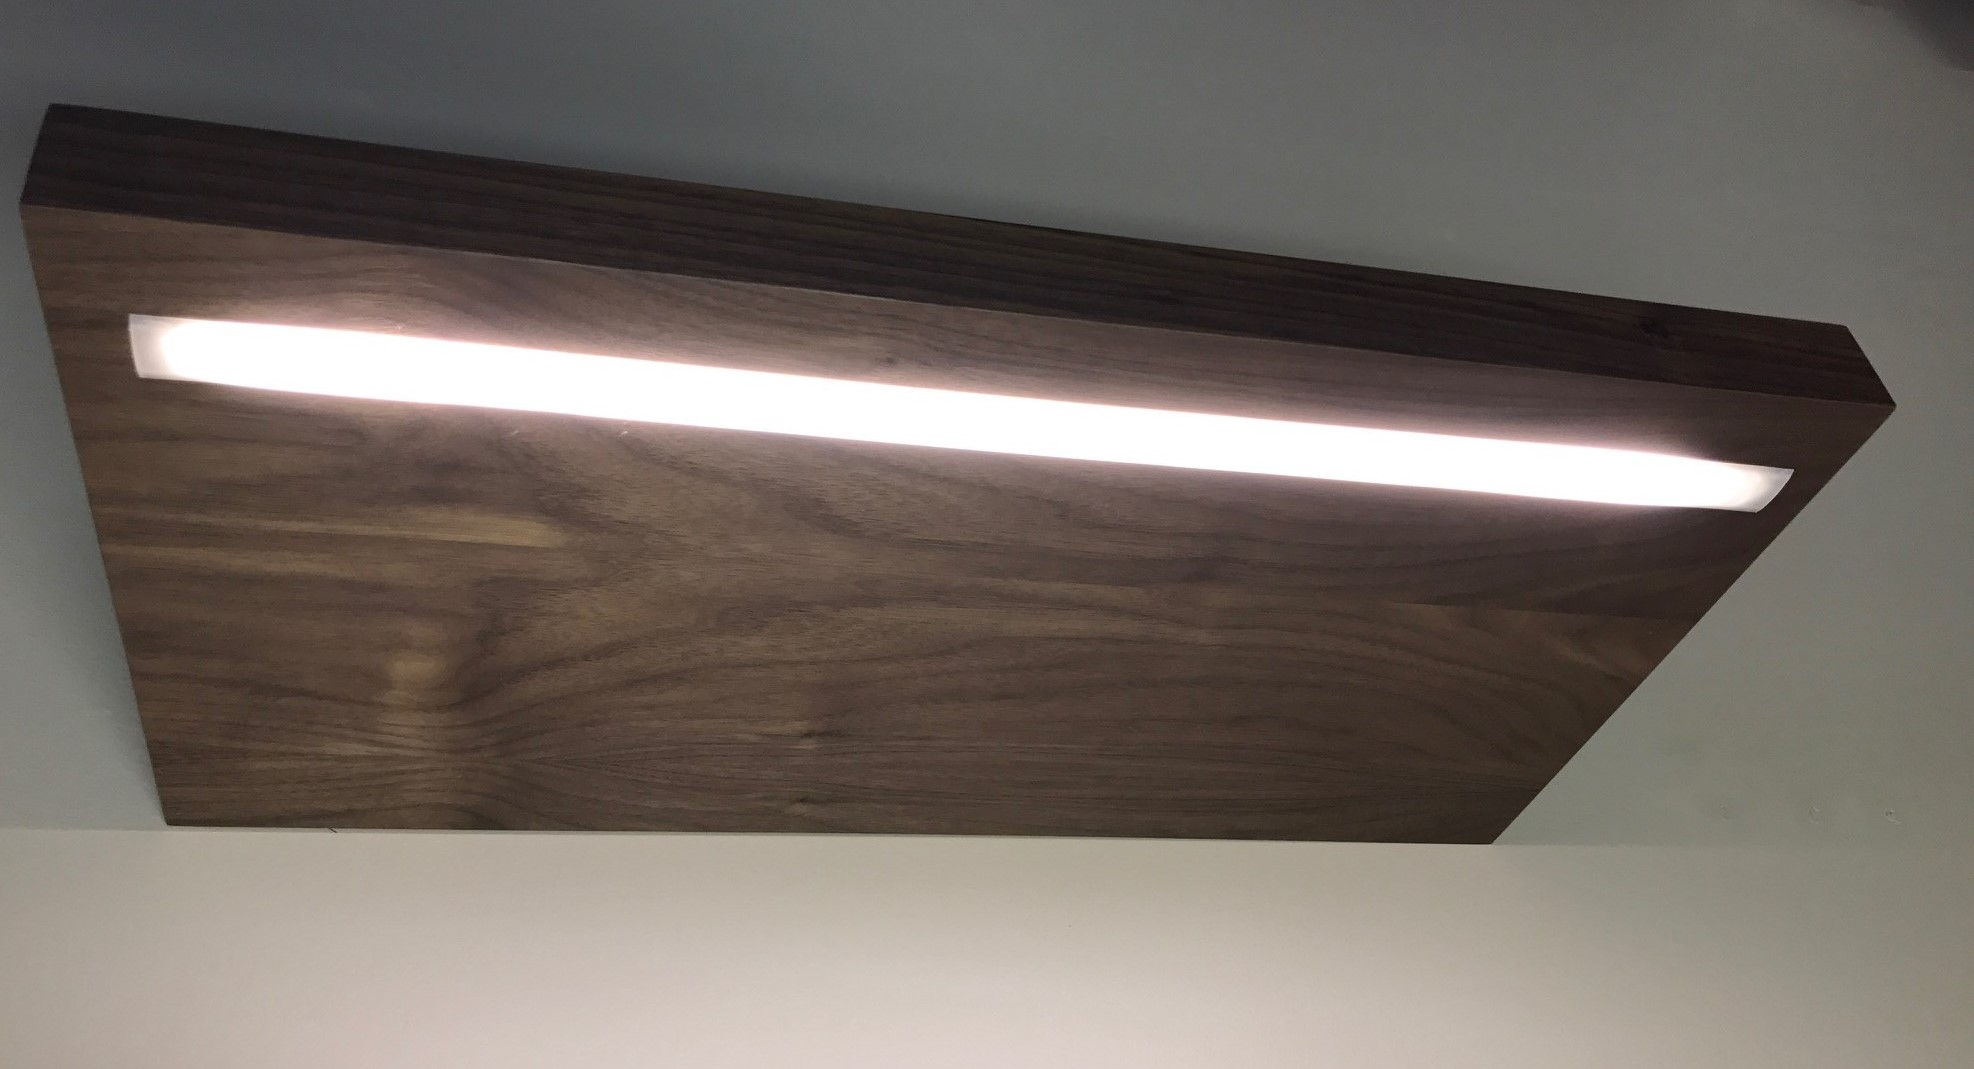 LED Lighting Options For Custom Floating Shelves